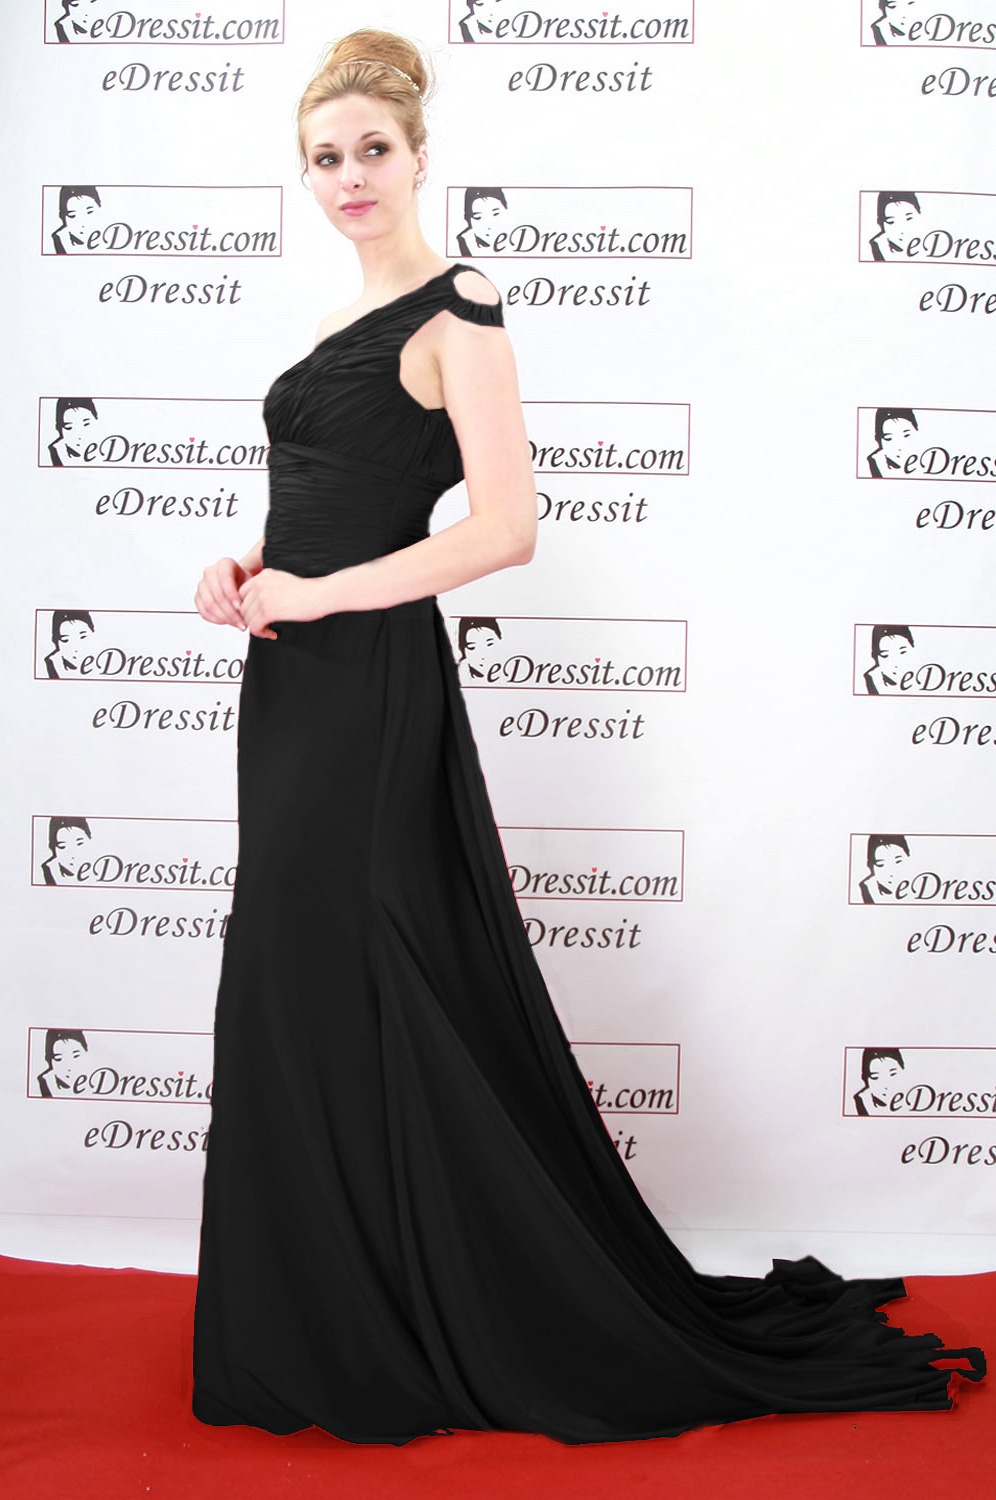 On sale!! eDressit black evening dress prom dress (00080602f)